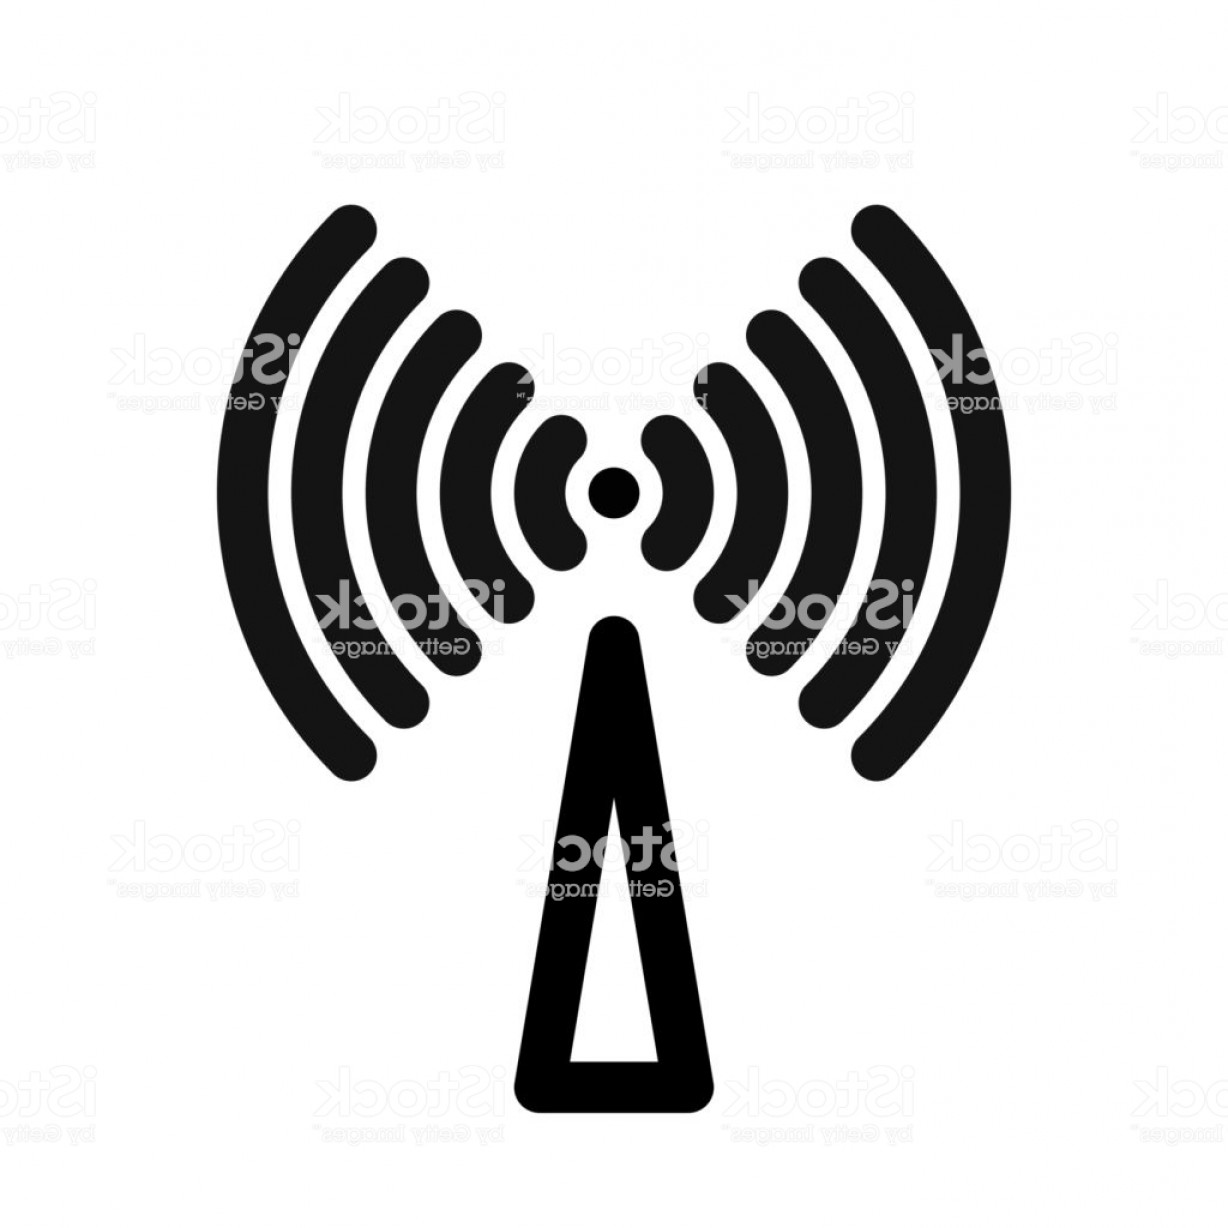 Wifi Symbol Clip Art Vector: Wifi Symbol Wireless Internet Connection Or Hotspot Sign Outline Modern Design Gm